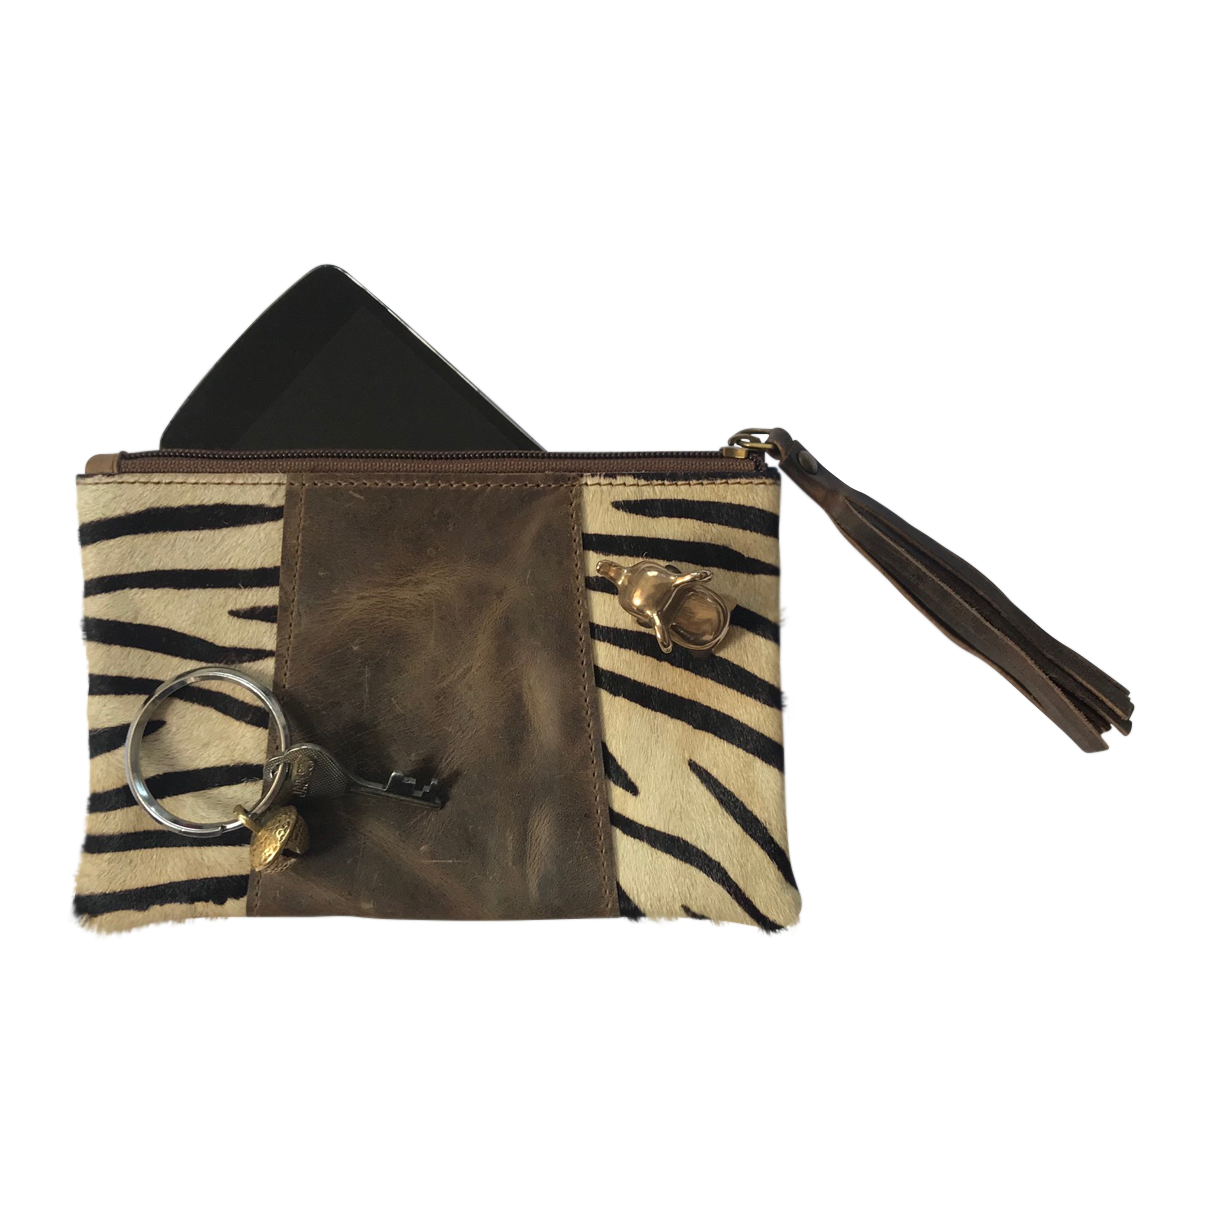 Ema_Frost_Leather_Zebra_Brown_Purse